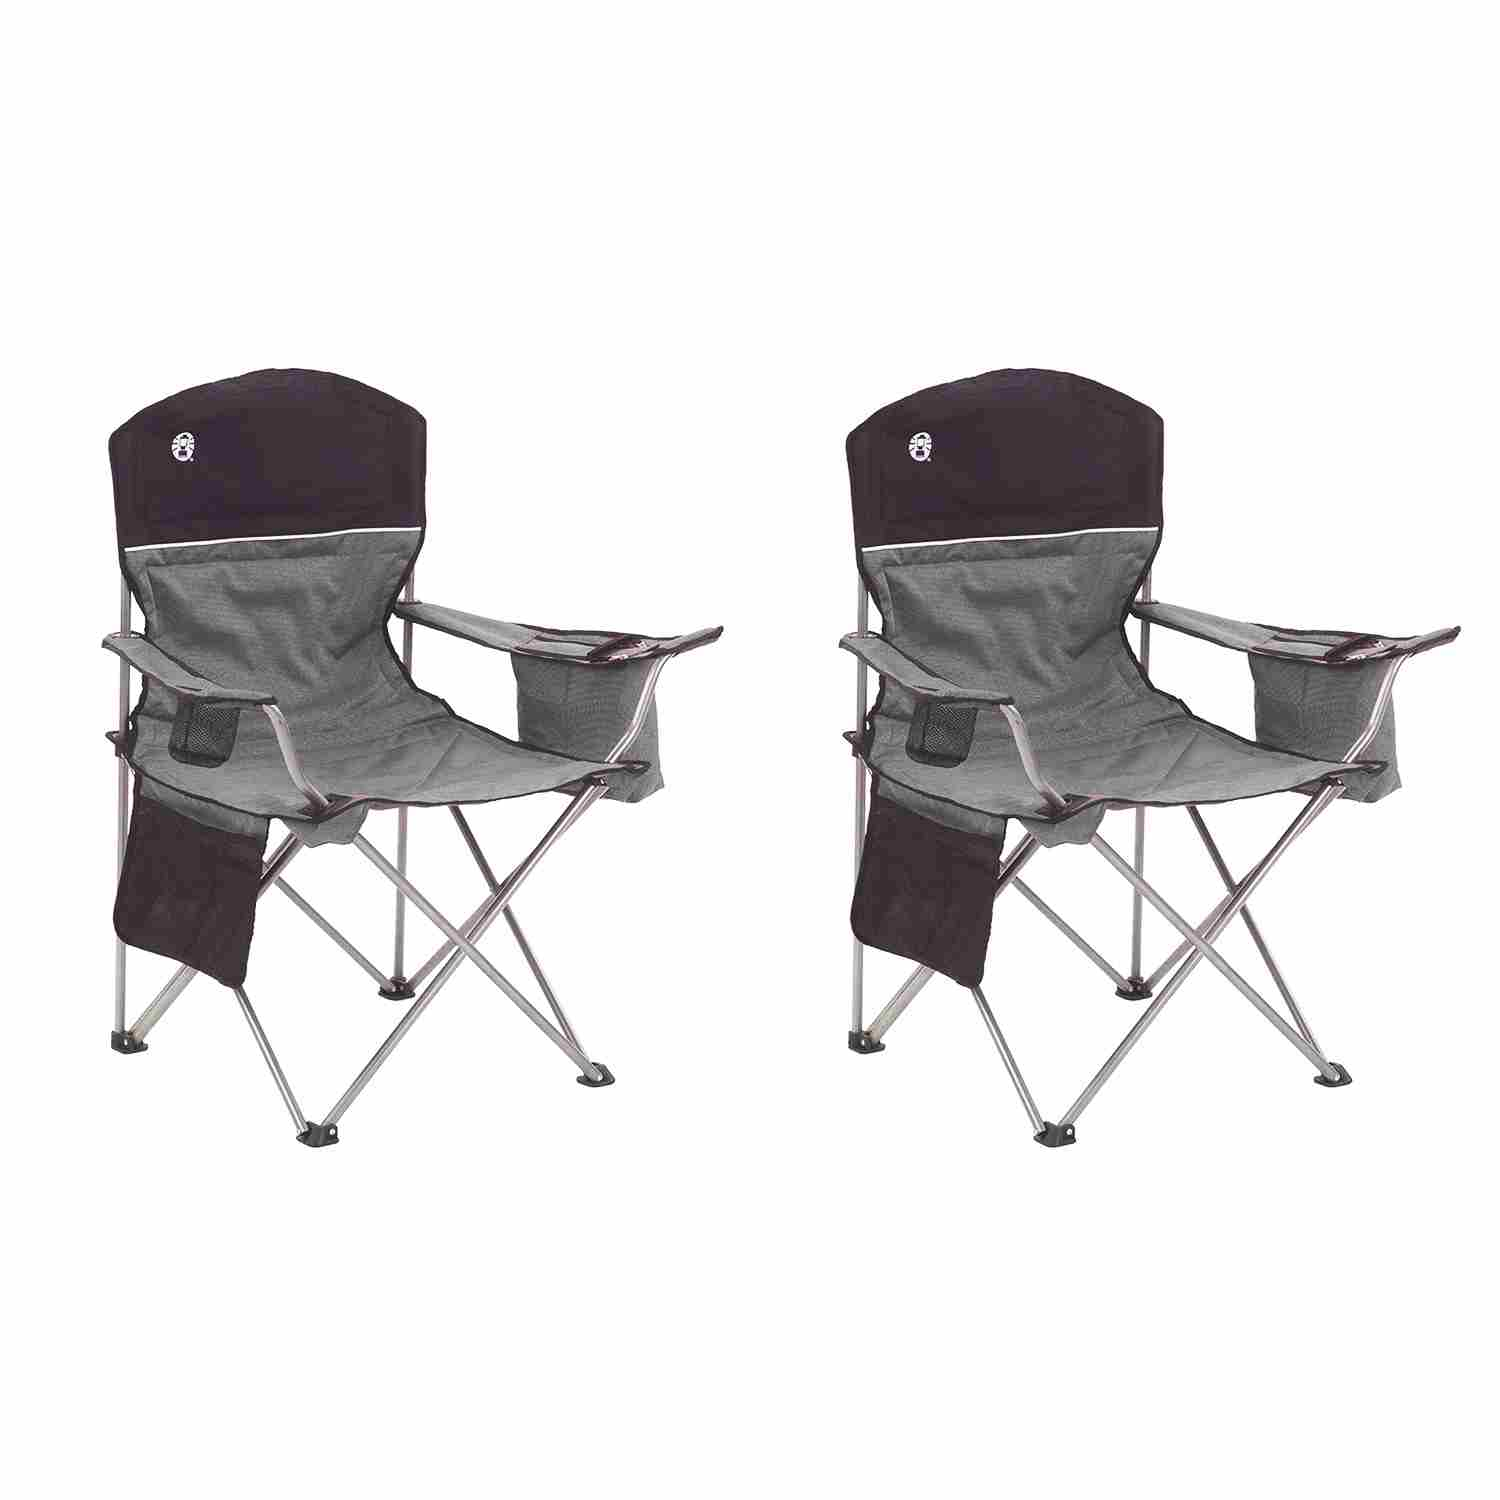 Coleman Maccabee Camping Chairs